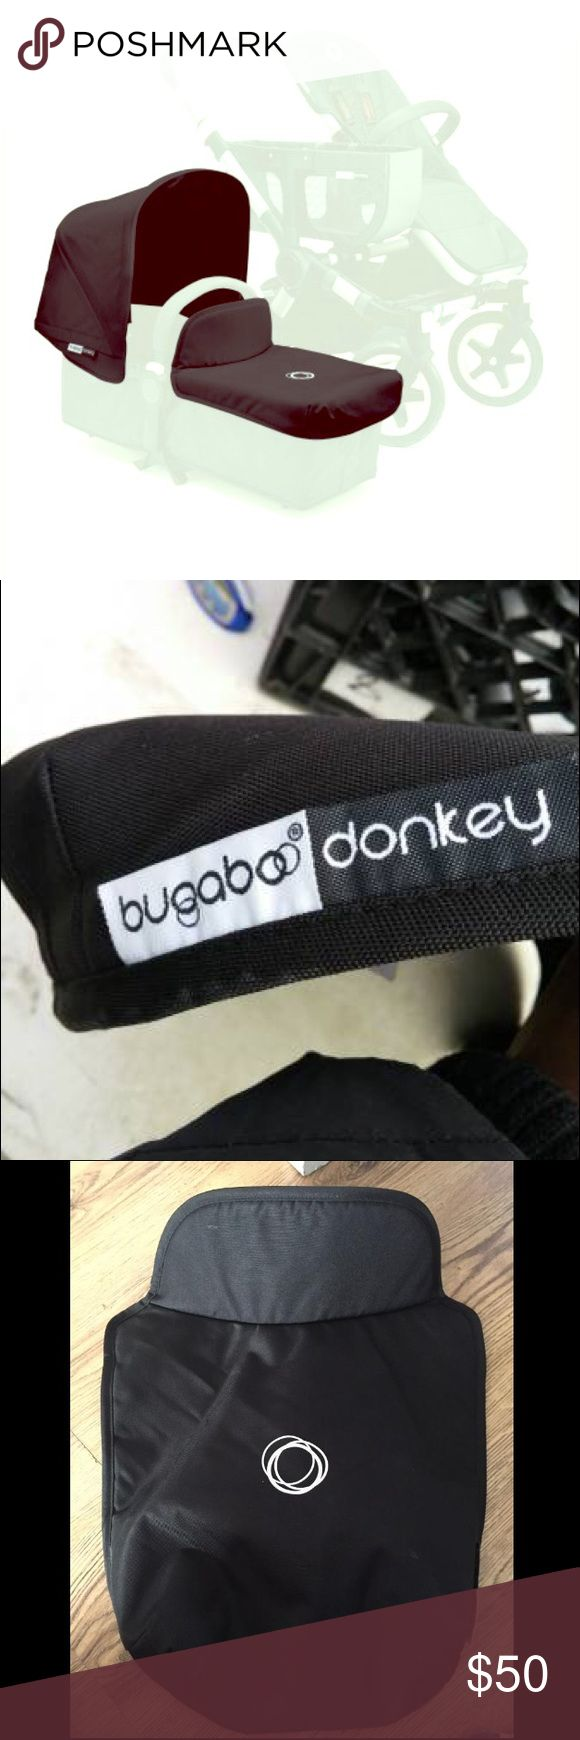 Bugaboo Donkey Apron black Bugaboo Donkey apron, black. This listing is for the apron only (no sun canopy). Used but excellent condition. bugaboo Accessories